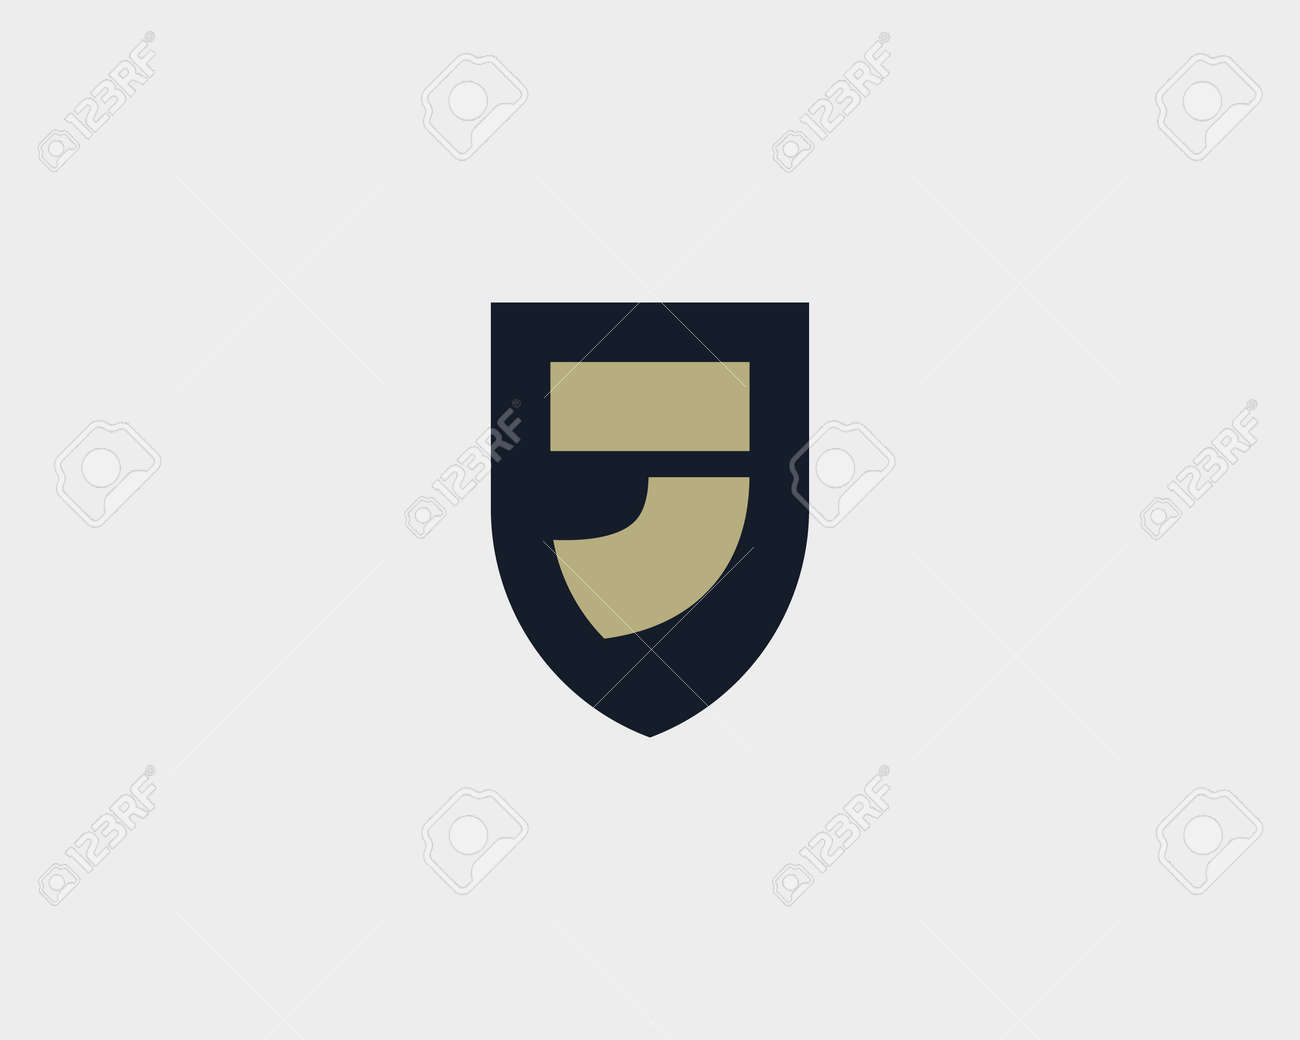 Abstract Letter J Shield Design Template Royalty Free Cliparts ...